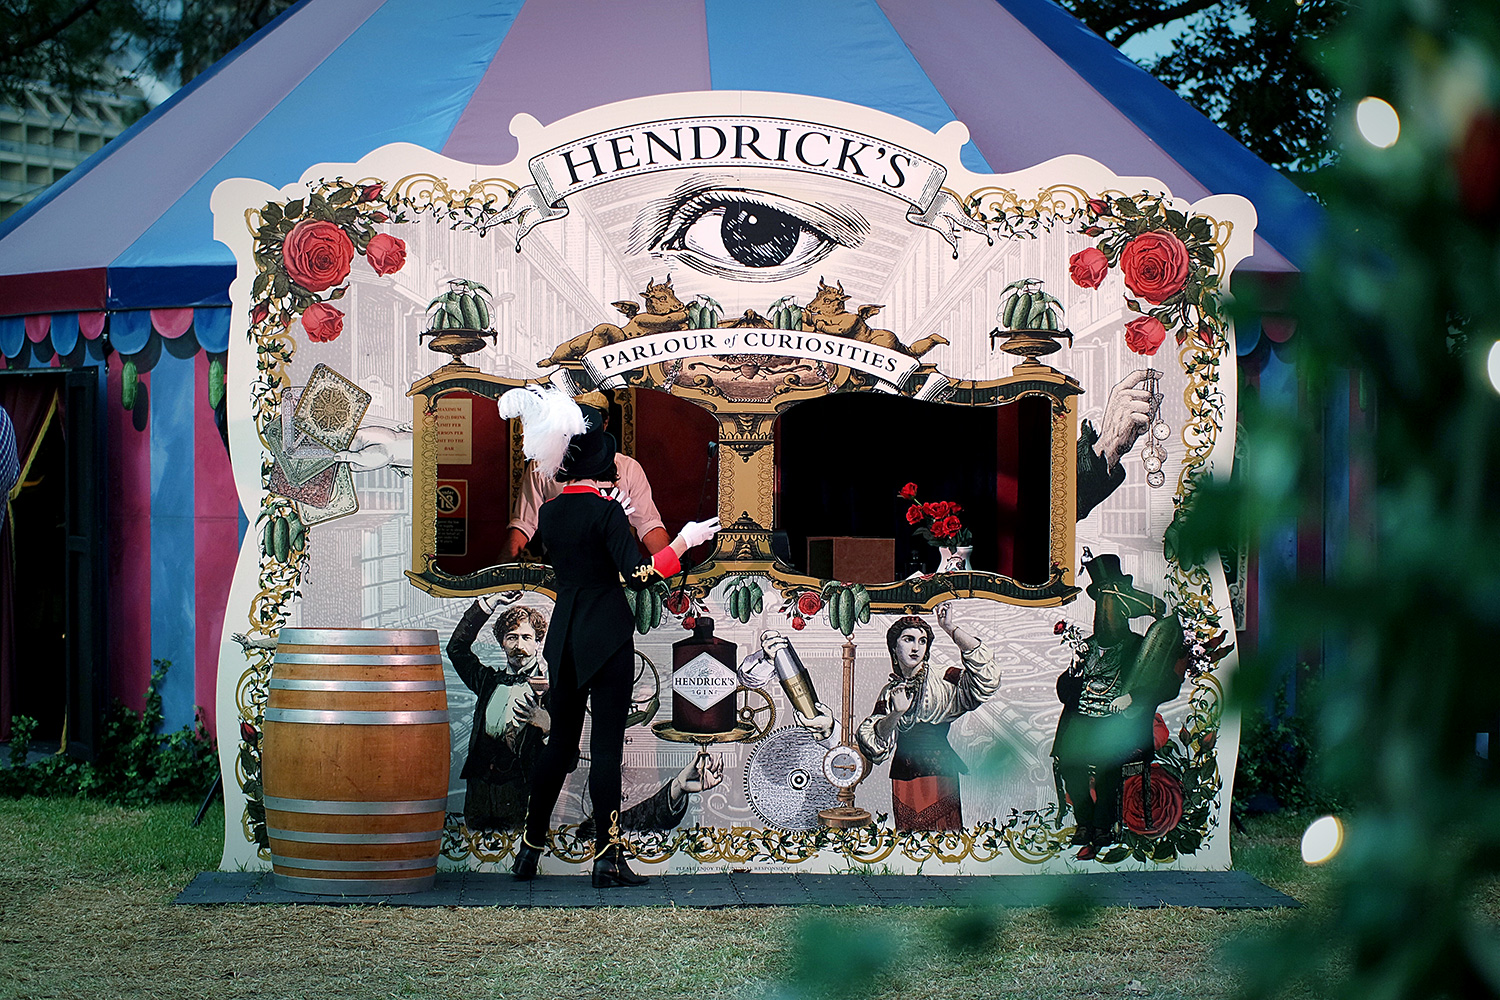 Hendricks Parlour of Curiosities